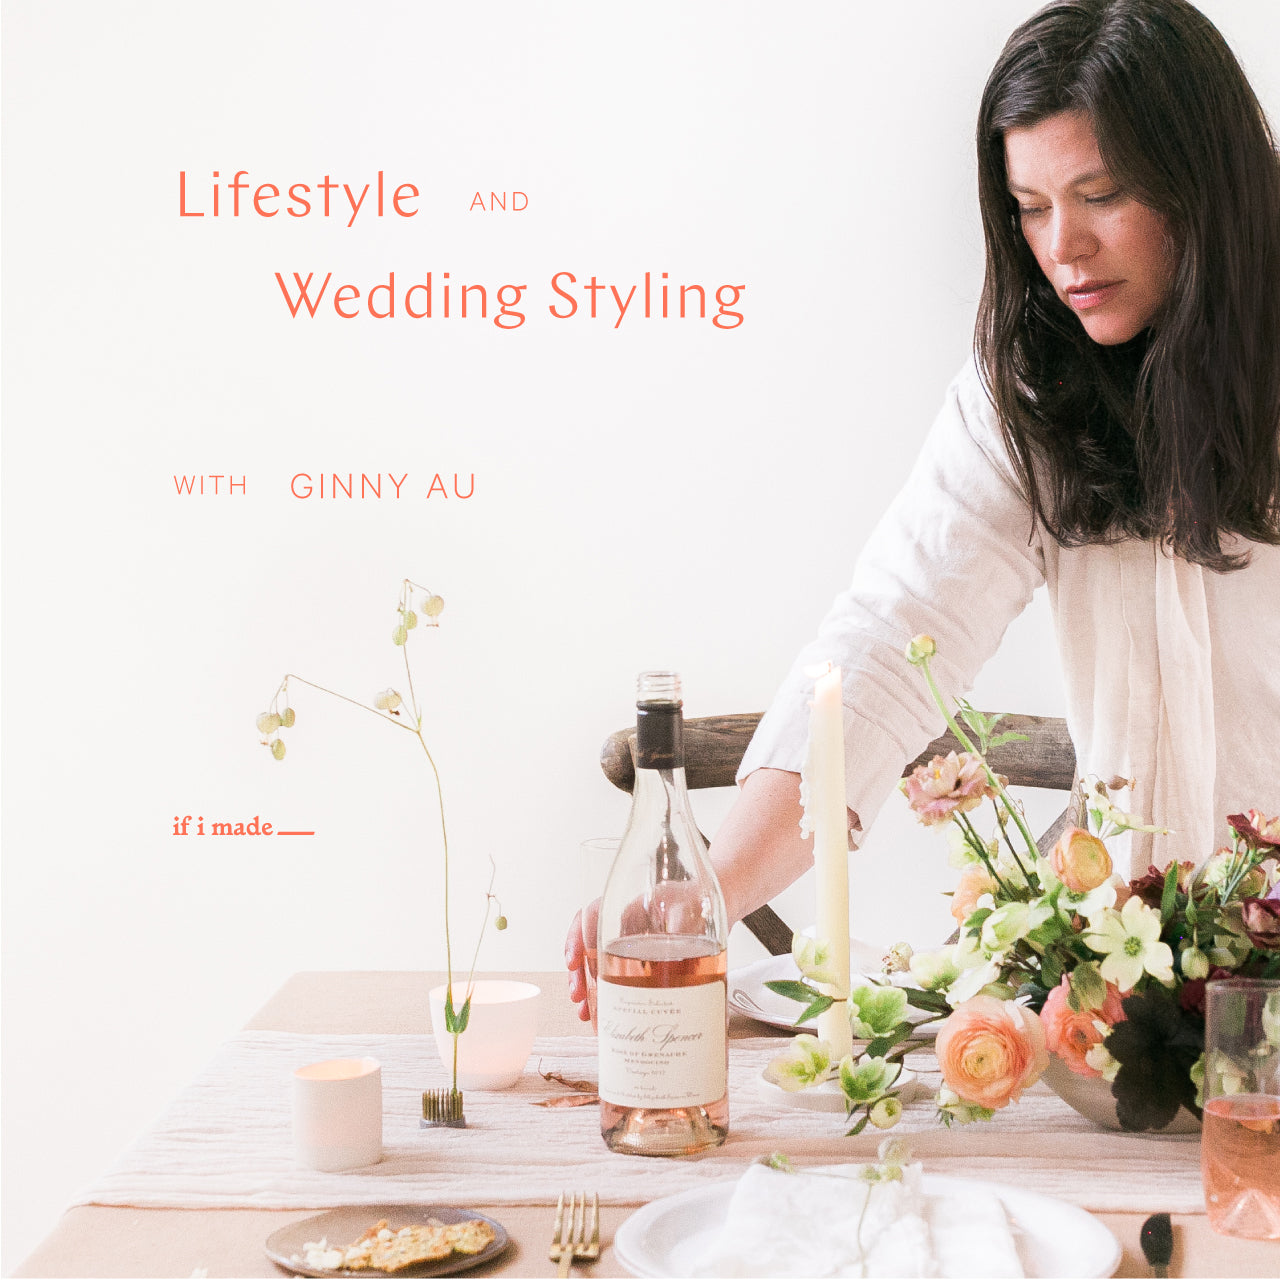 Lifestyle and Wedding Styling by Ginny Au (ROP)